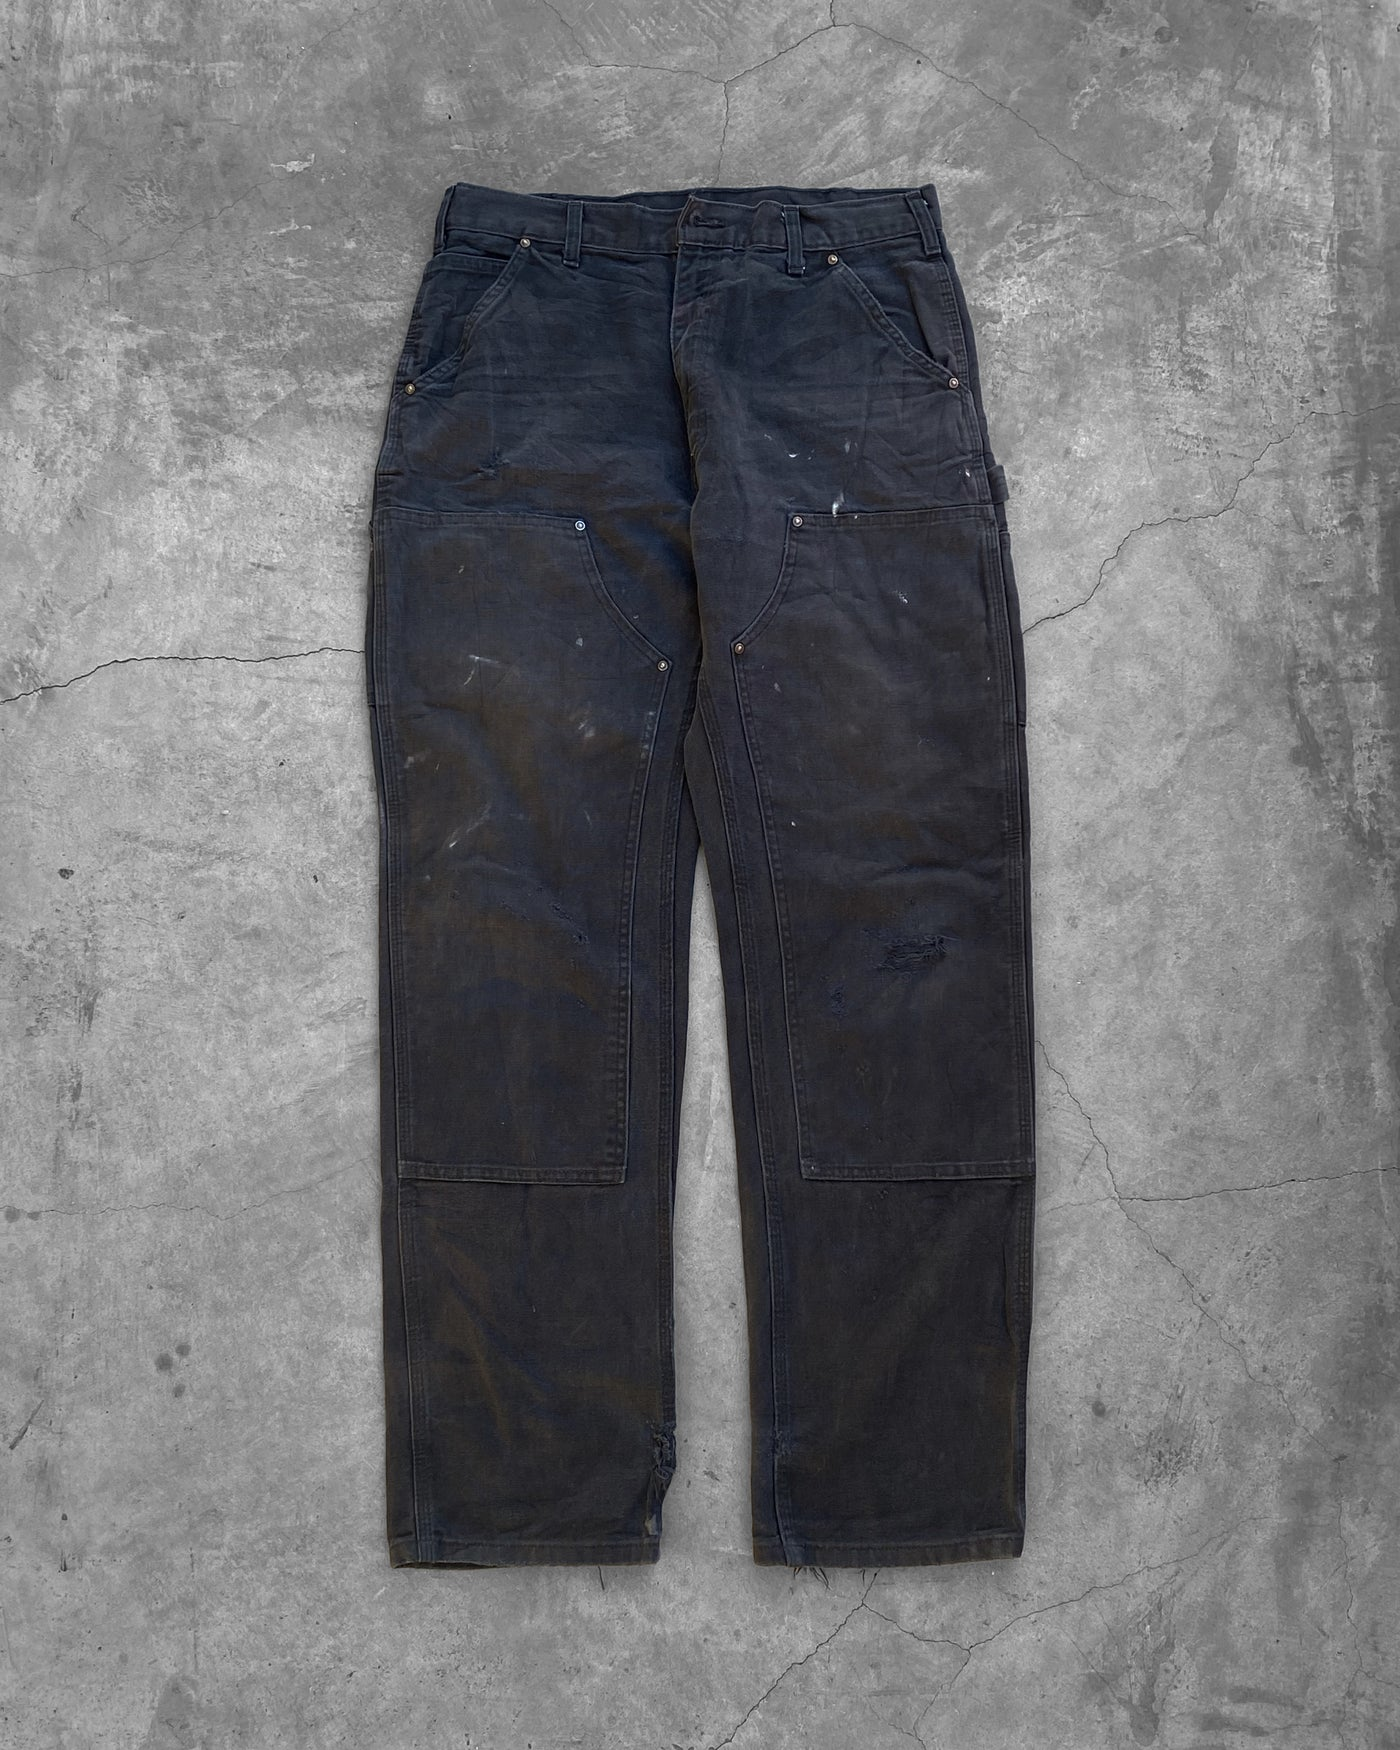 Carhartt Midnight Blue Double Knee Work Pant - 1990s